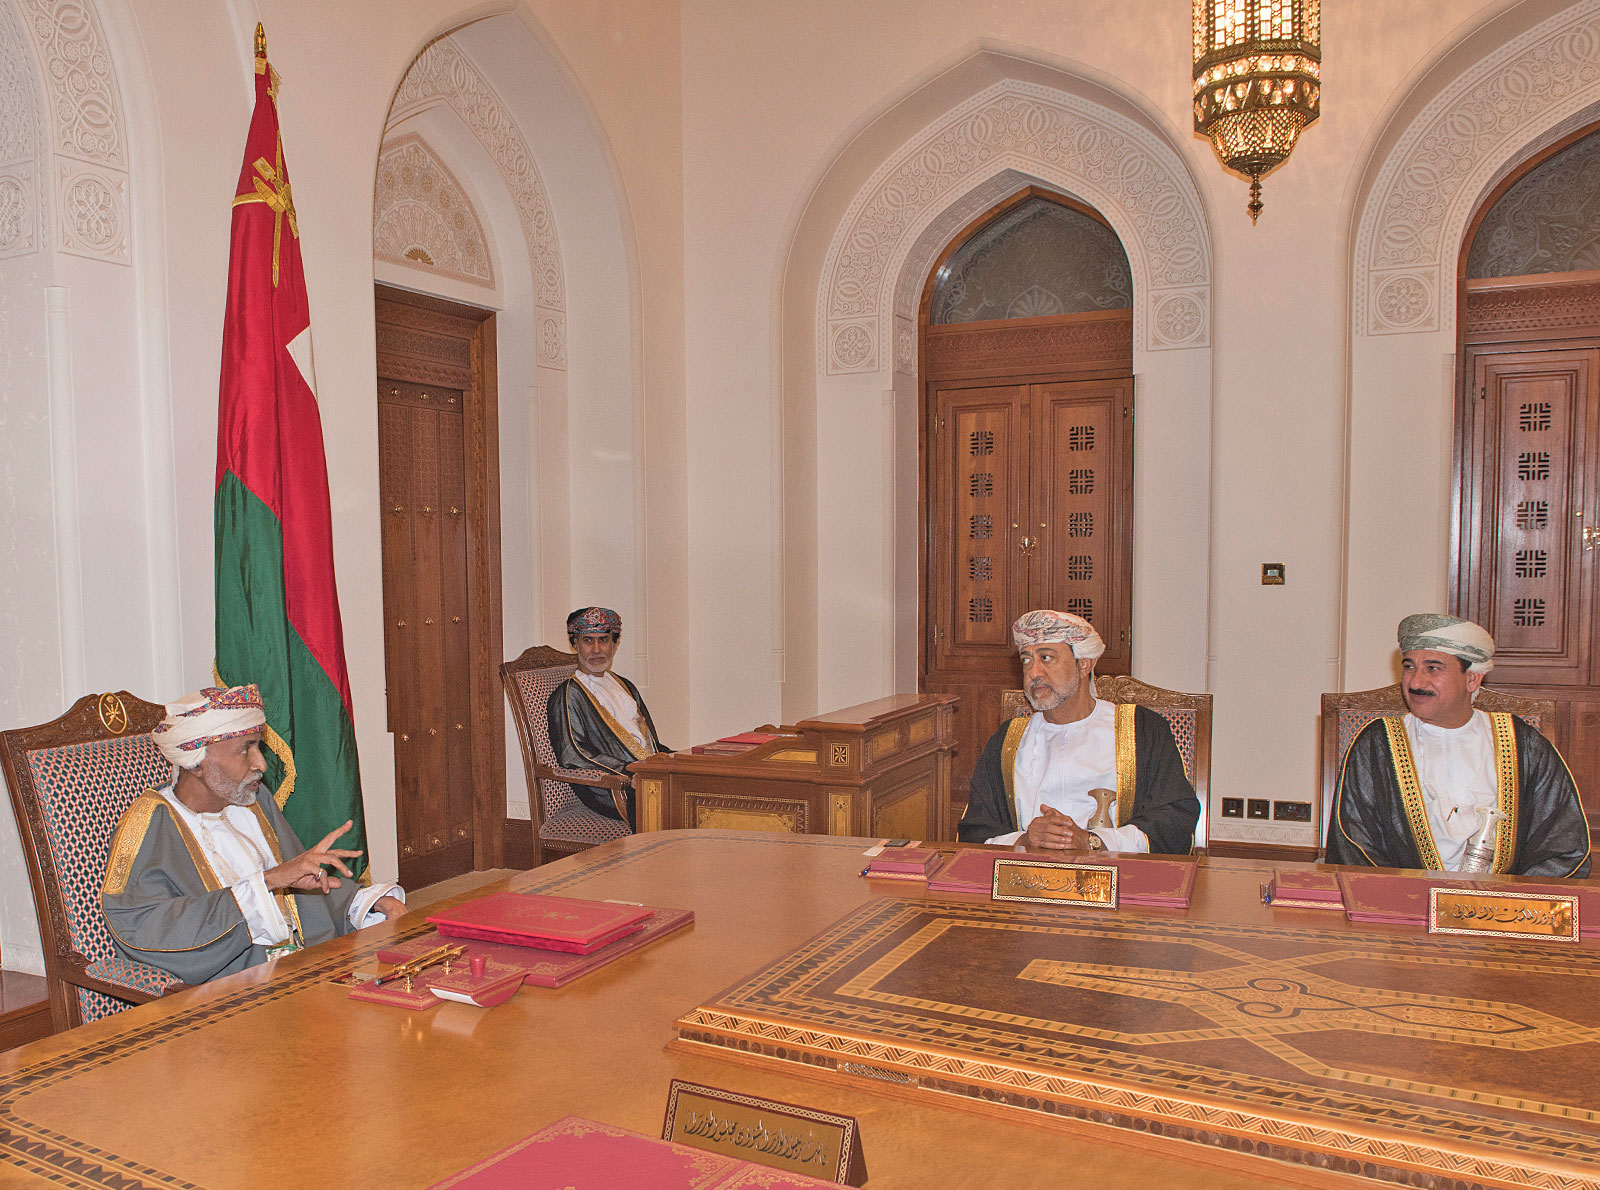 In pictures: Six ambassadors take oath before His Majesty